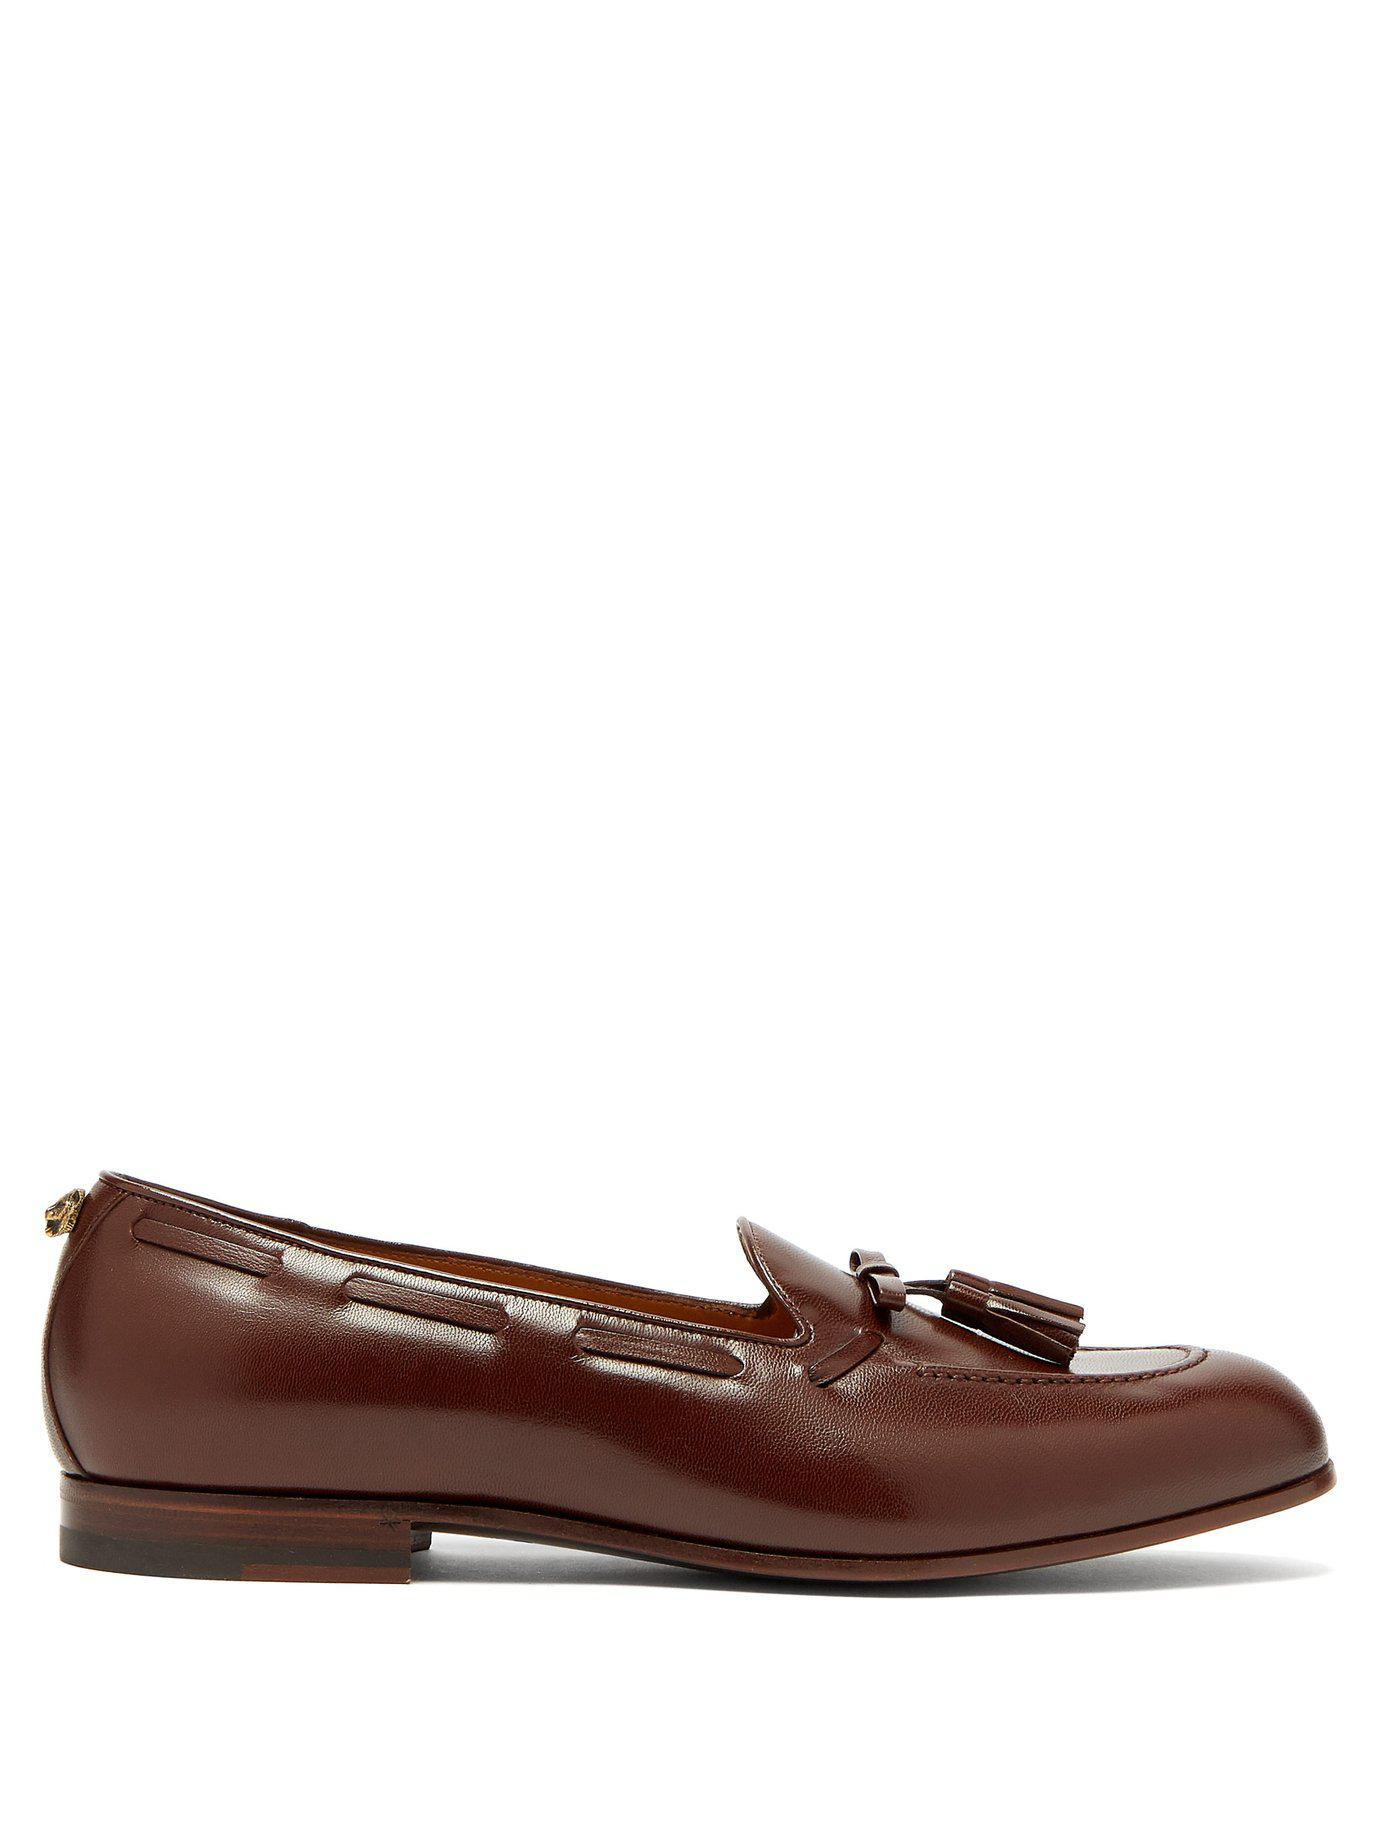 96d805d423f Lyst - Gucci Loomis Leather Tassel Loafers in Brown for Men